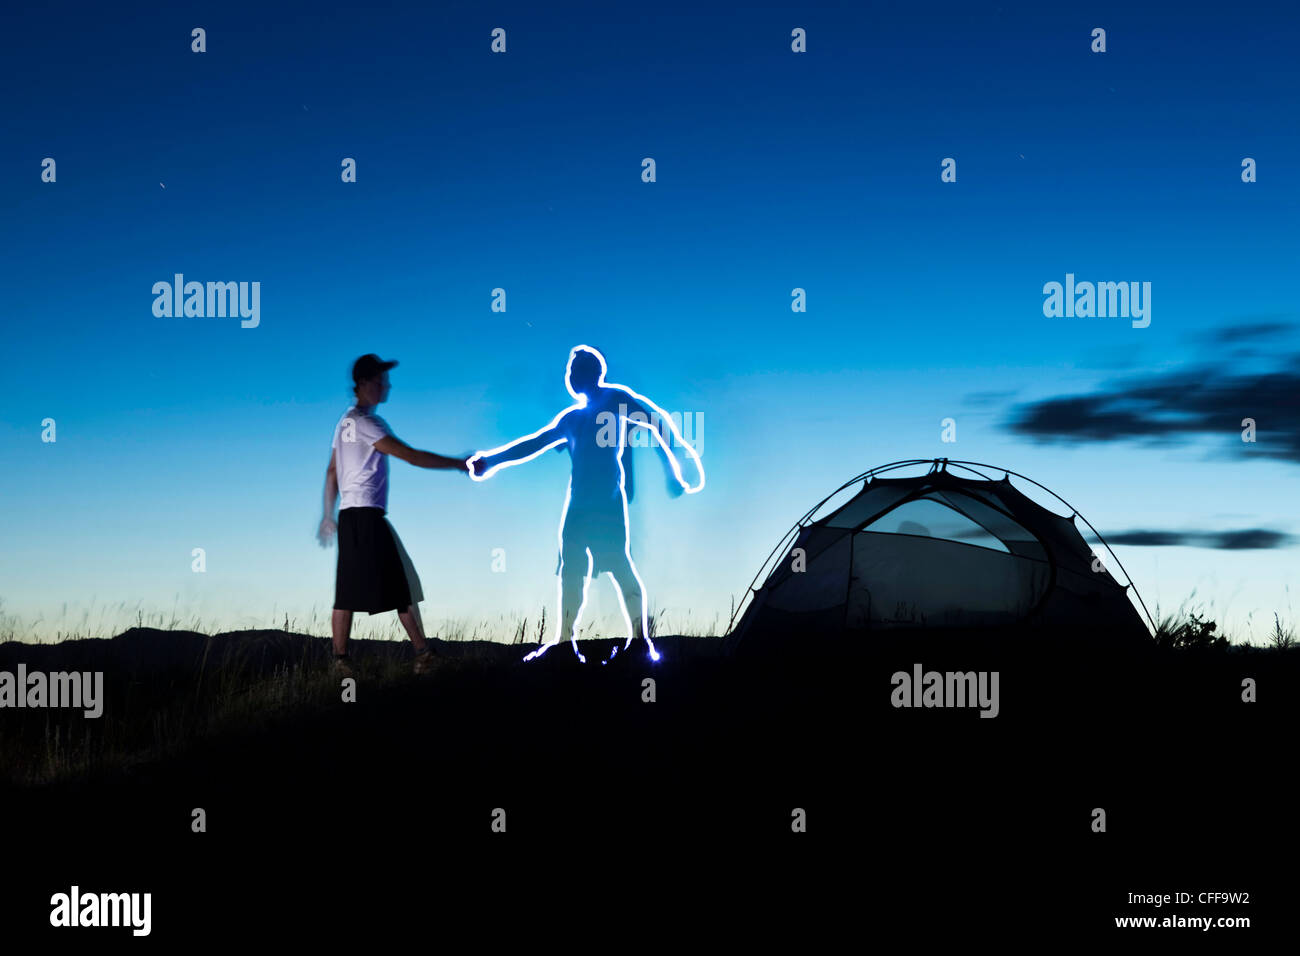 A light painting of a man shaking the hand of a digital friend on a camping trip in Montana. - Stock Image